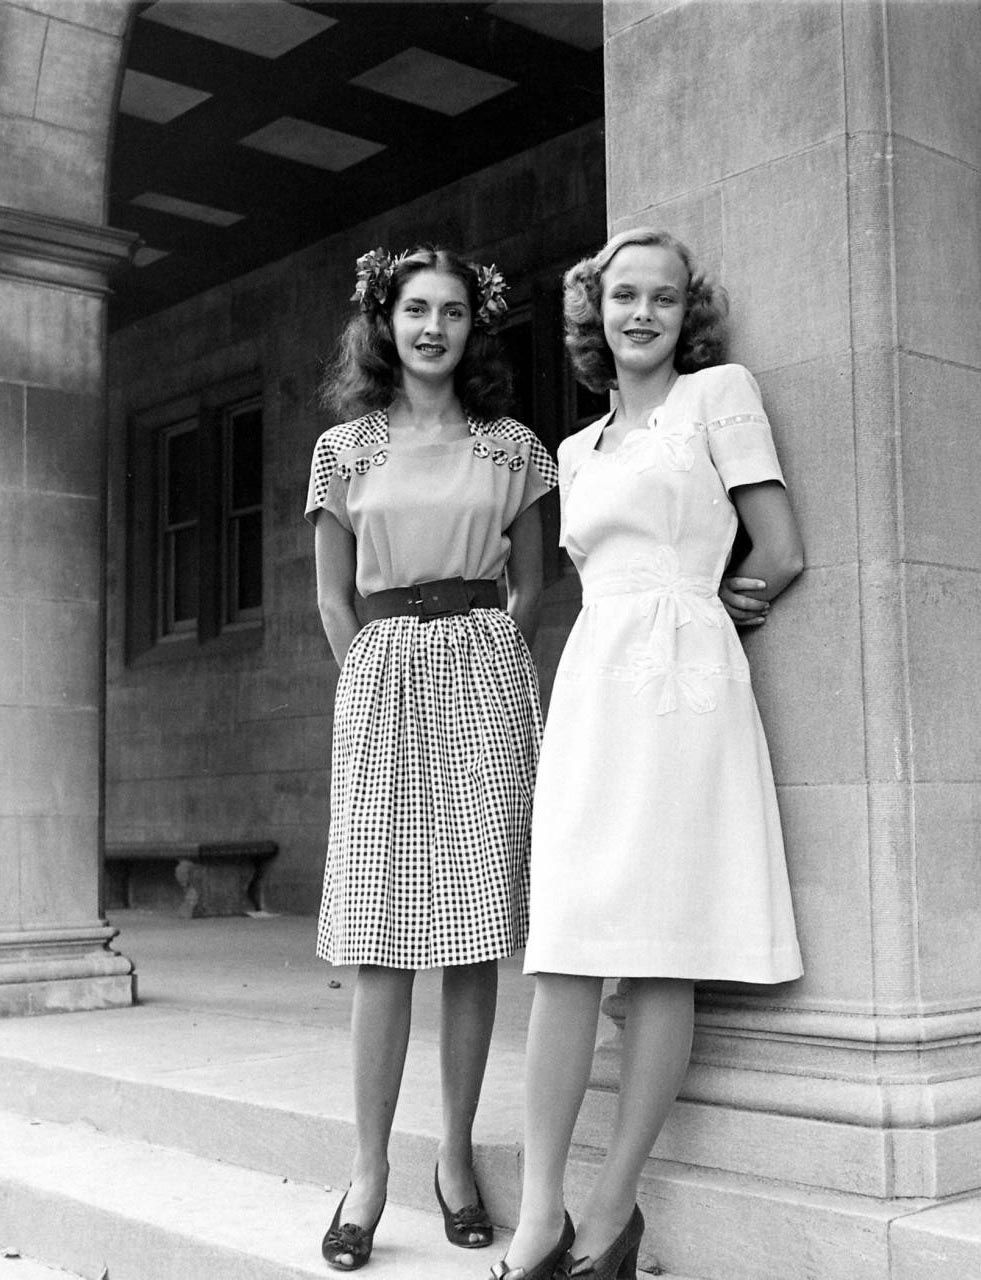 The Real And The Inspired By 1940s Fashion: 40's Cute Sheath Dresses That Hit At The Right Places